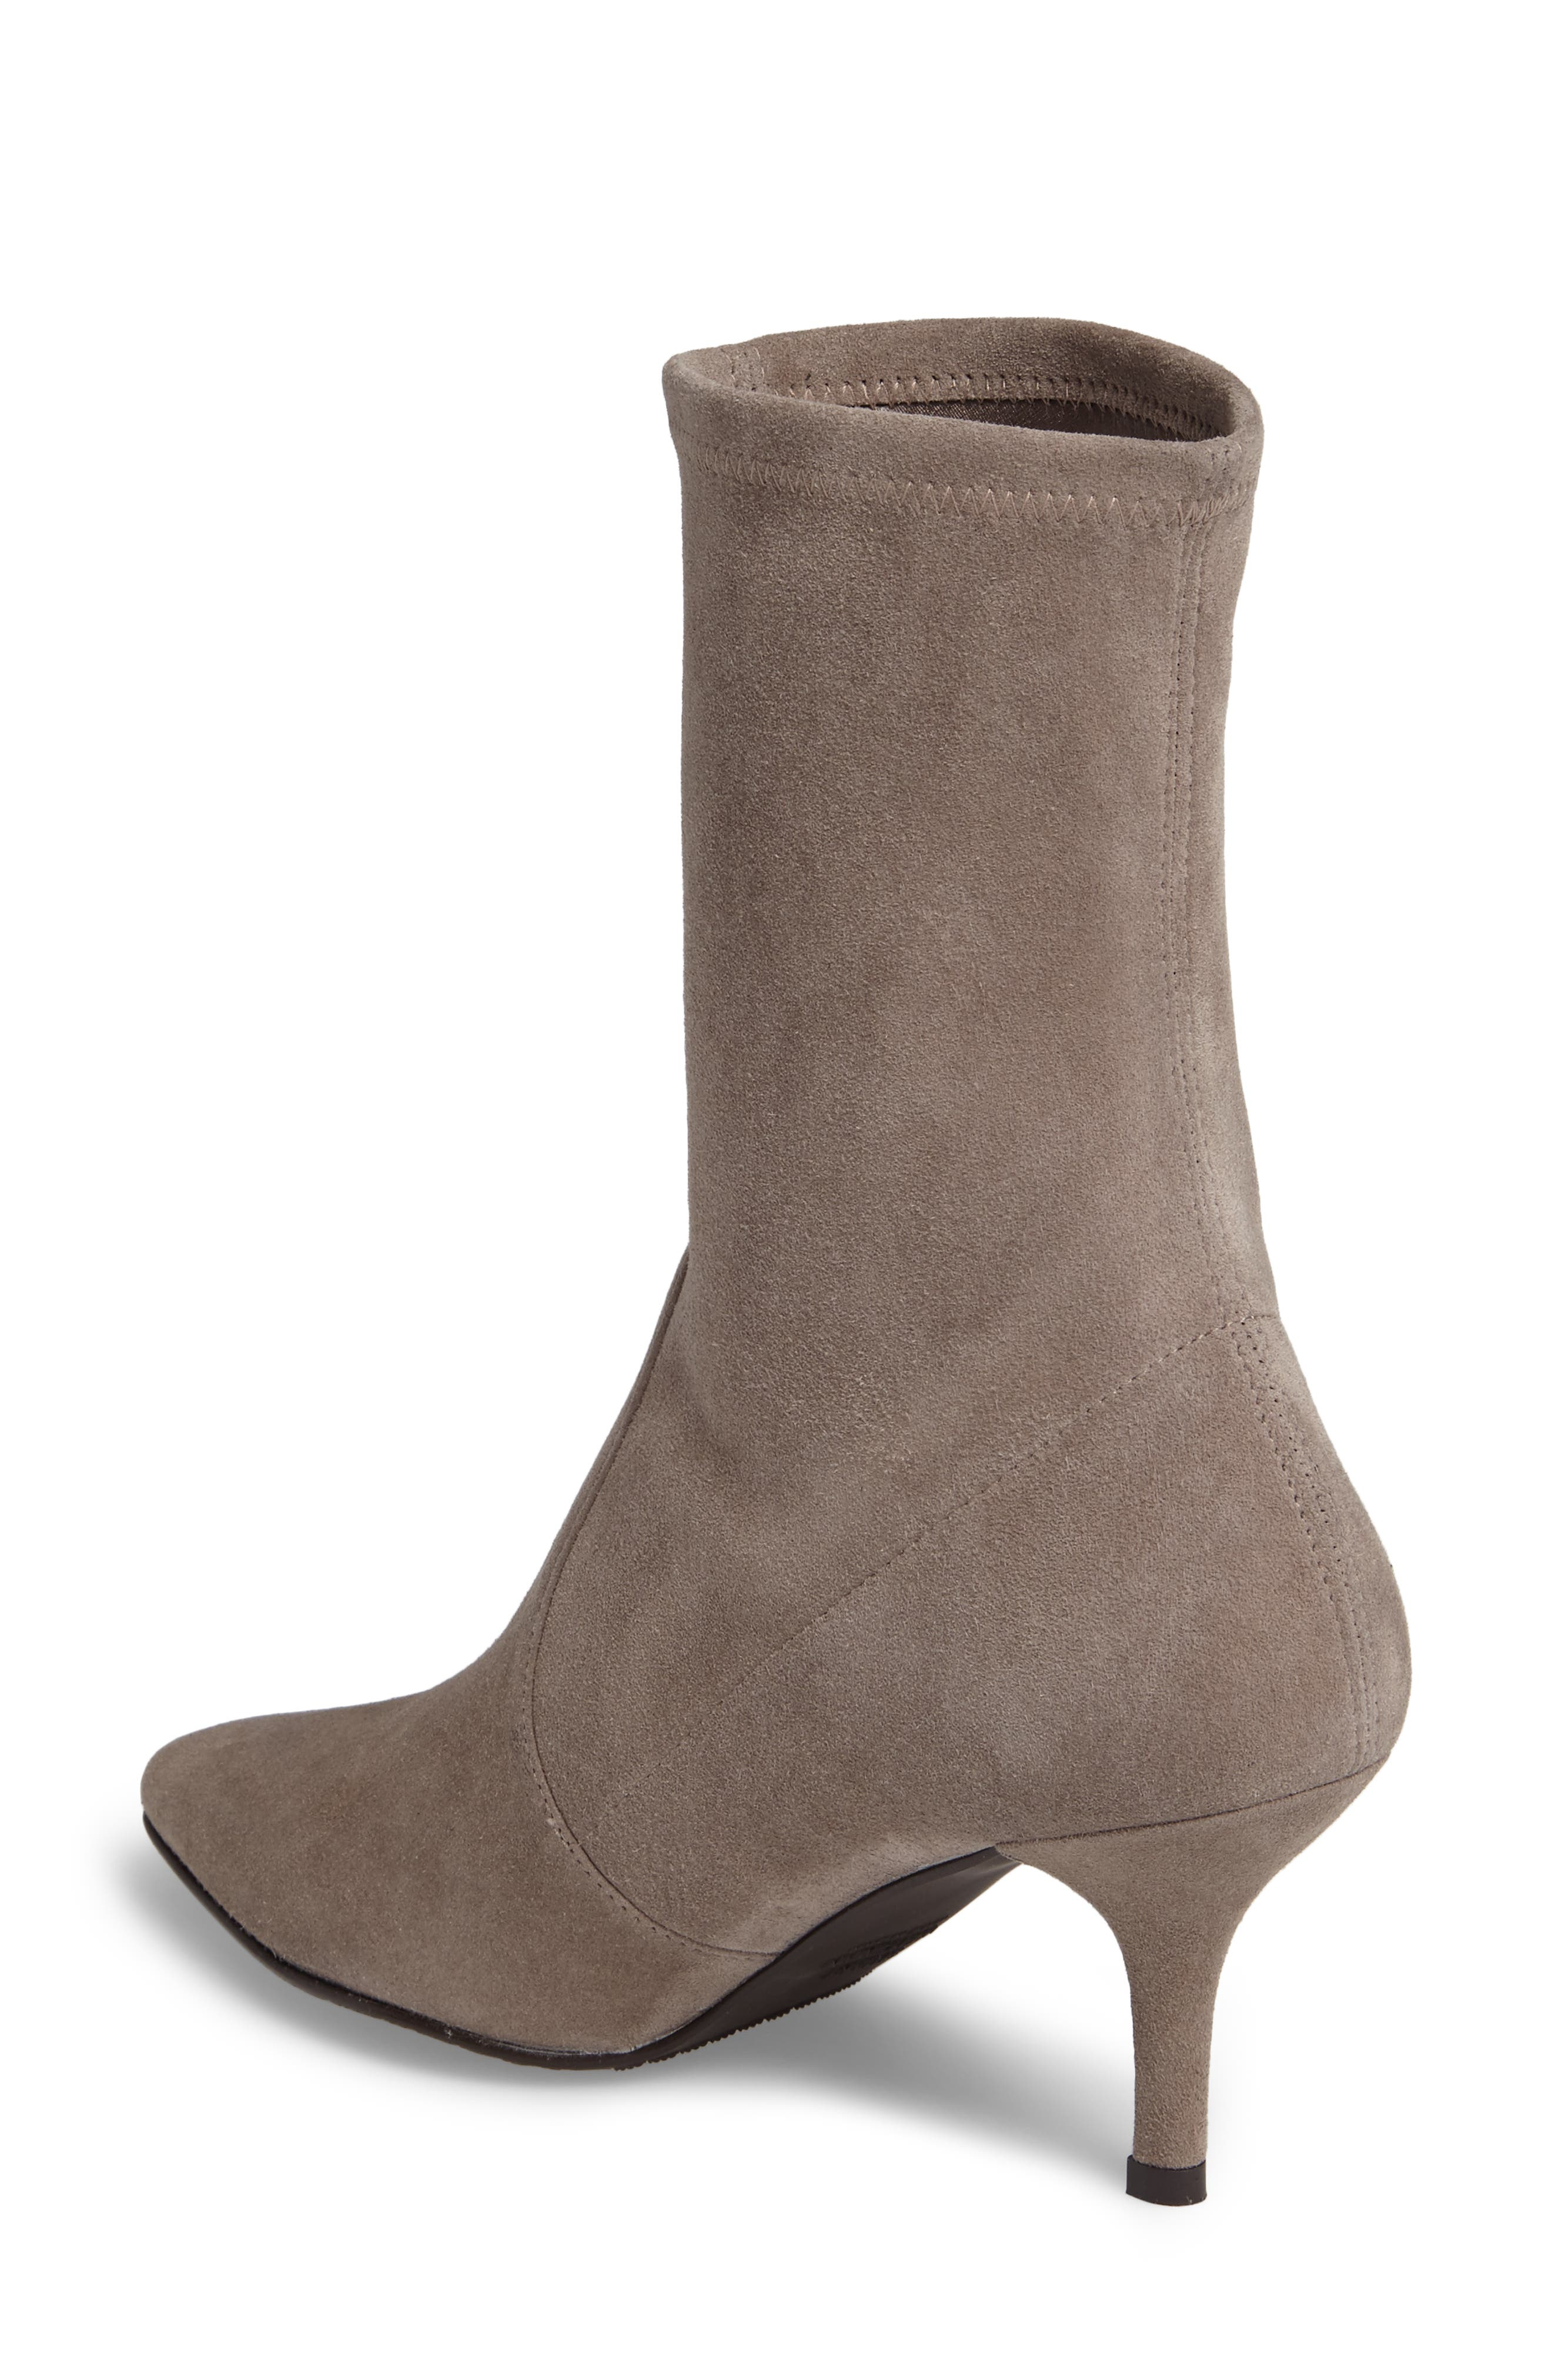 Cling Stretch Bootie,                             Alternate thumbnail 17, color,